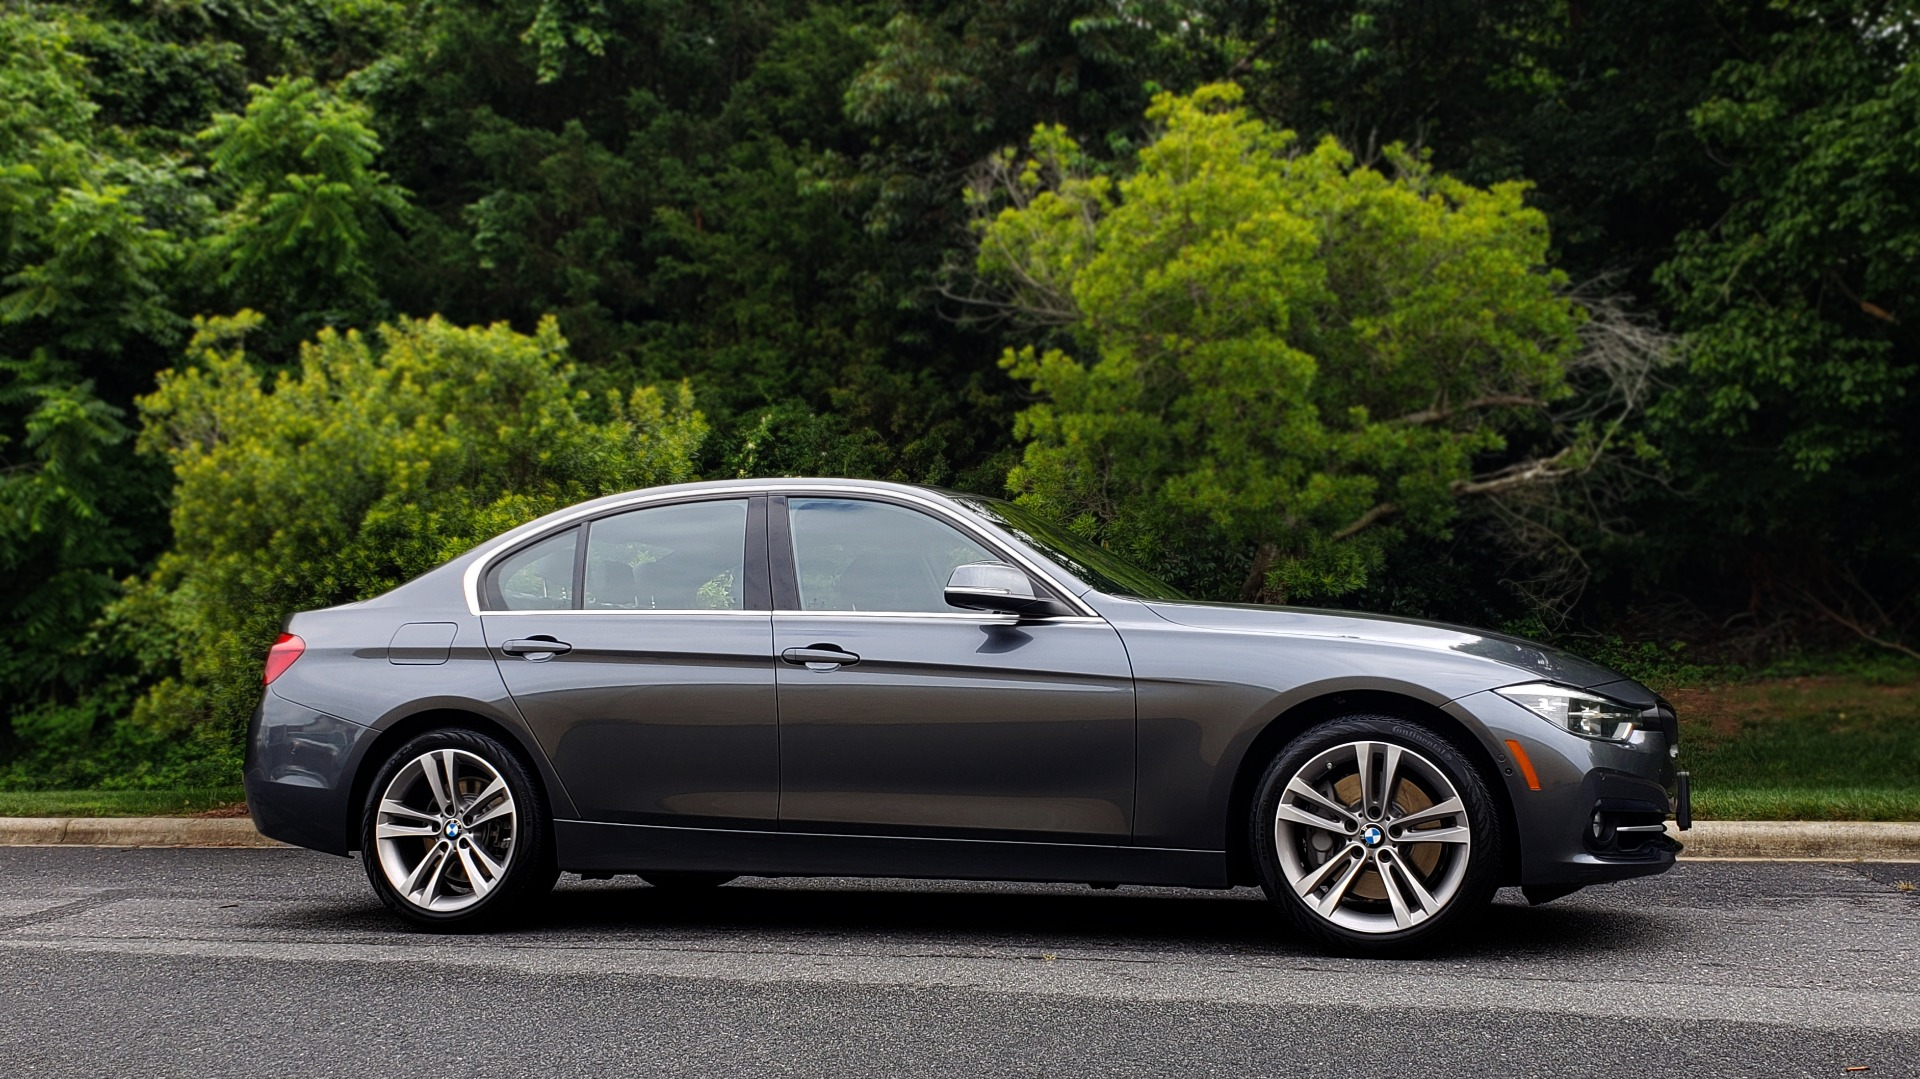 Used 2017 BMW 3 SERIES 340I XDRIVE SPORT / DRVR ASST PLUS / NAV / CLD WTHR / PARK ASST for sale Sold at Formula Imports in Charlotte NC 28227 5